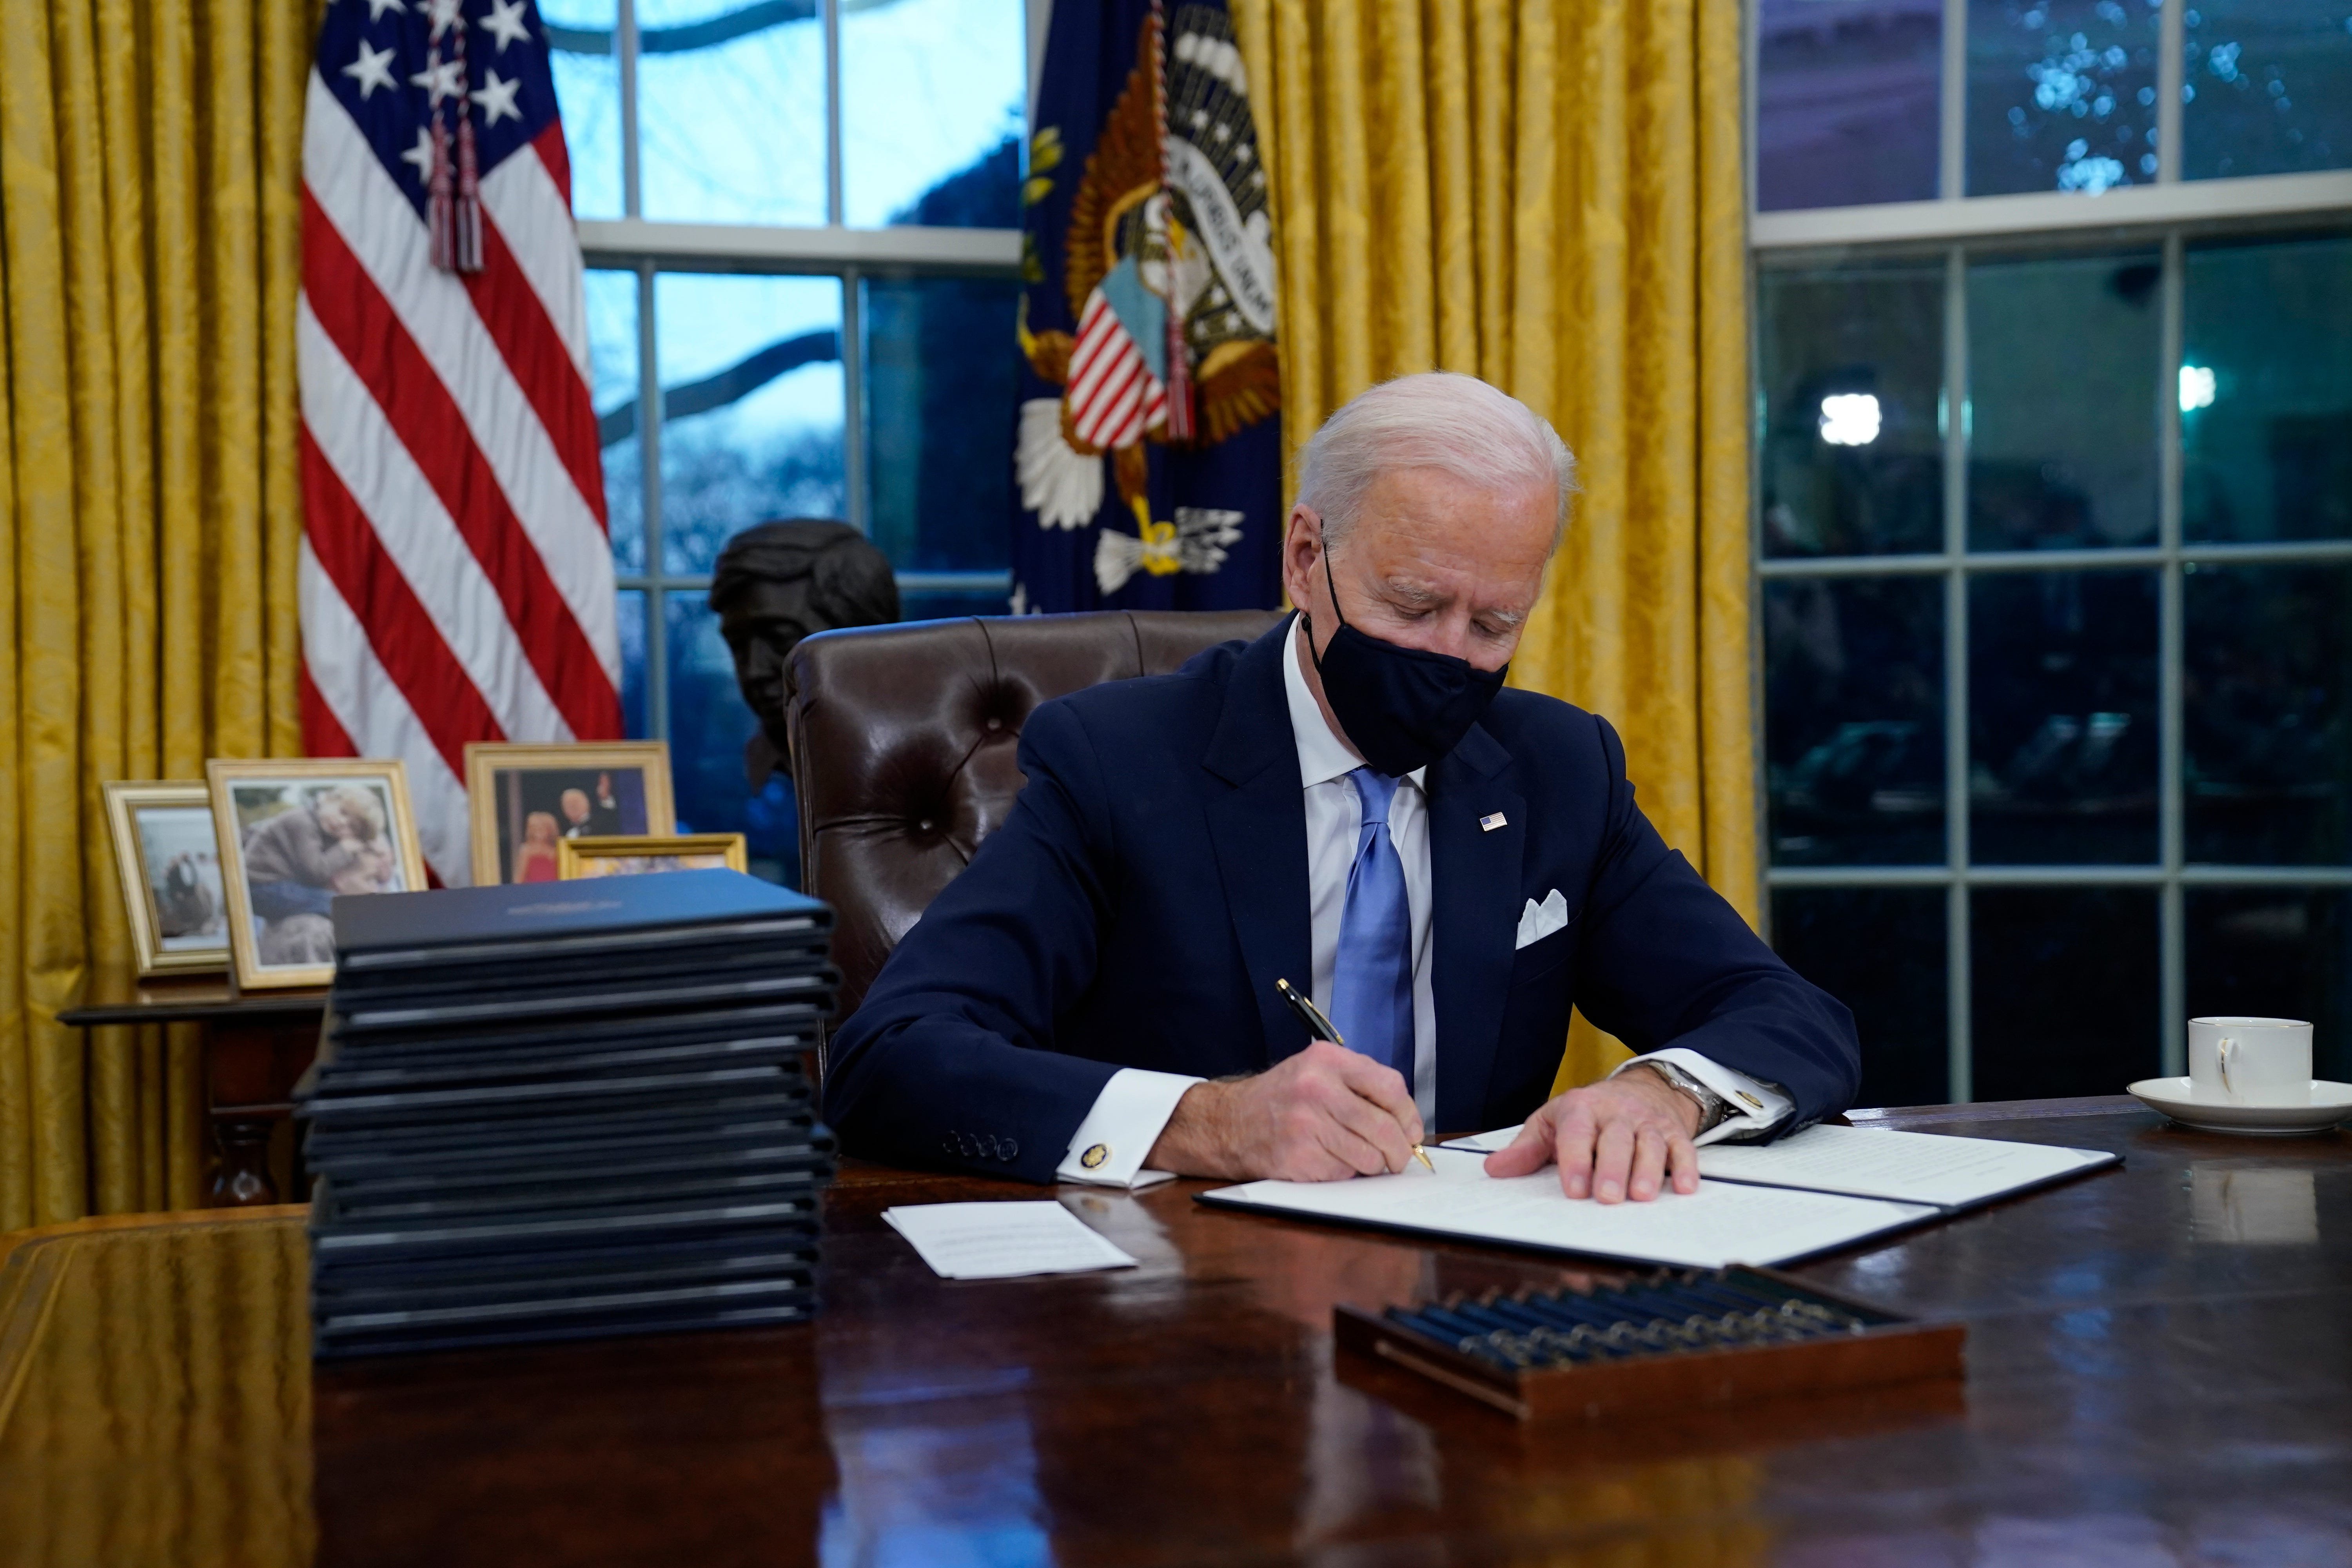 Fact check: Flipped photo falsely claims Biden has a body double and is left-handed